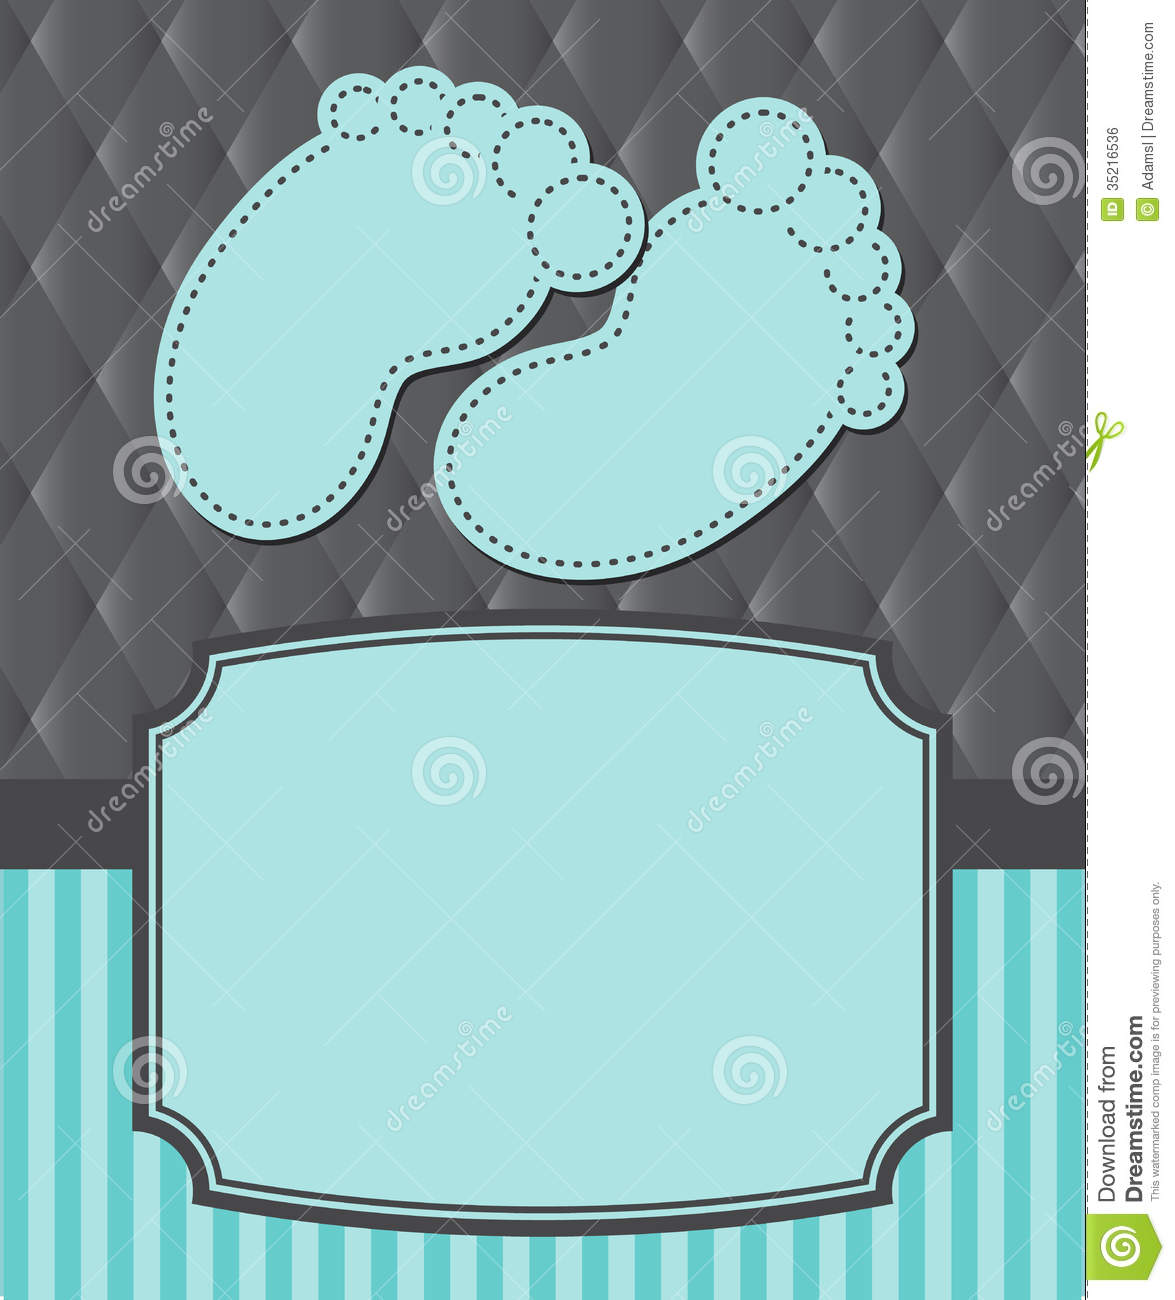 Twins Baby Shower Invitation with awesome invitations design